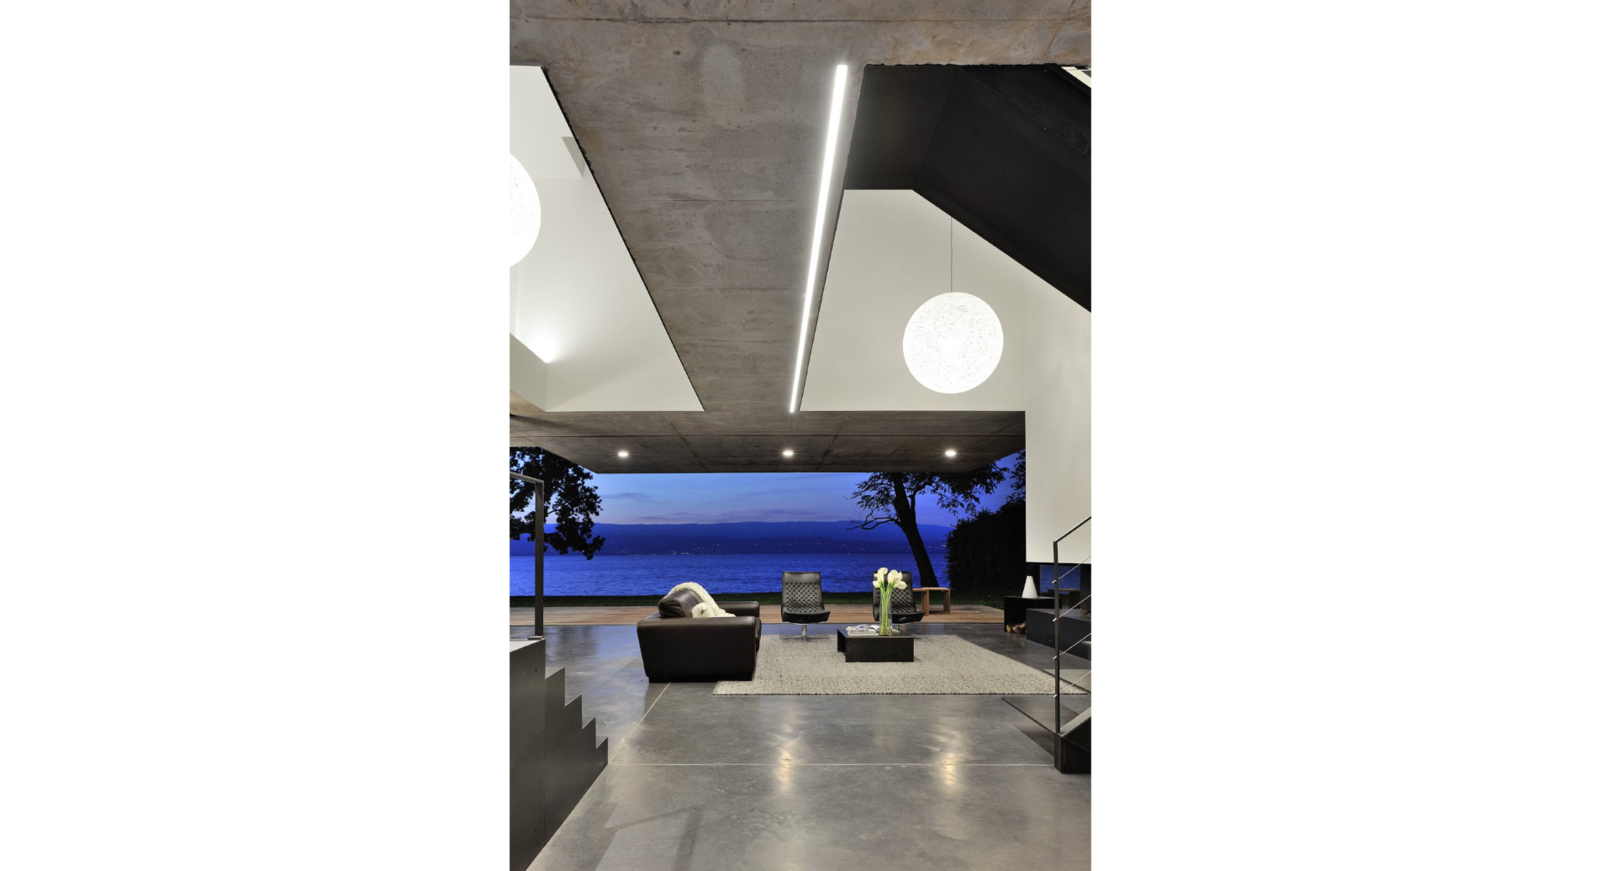 Living Room, Sofa, Coffee Tables, Recliner, Console Tables, Ceiling Lighting, Pendant Lighting, and Concrete Floor Overlooking the setting sun  House on the Lake